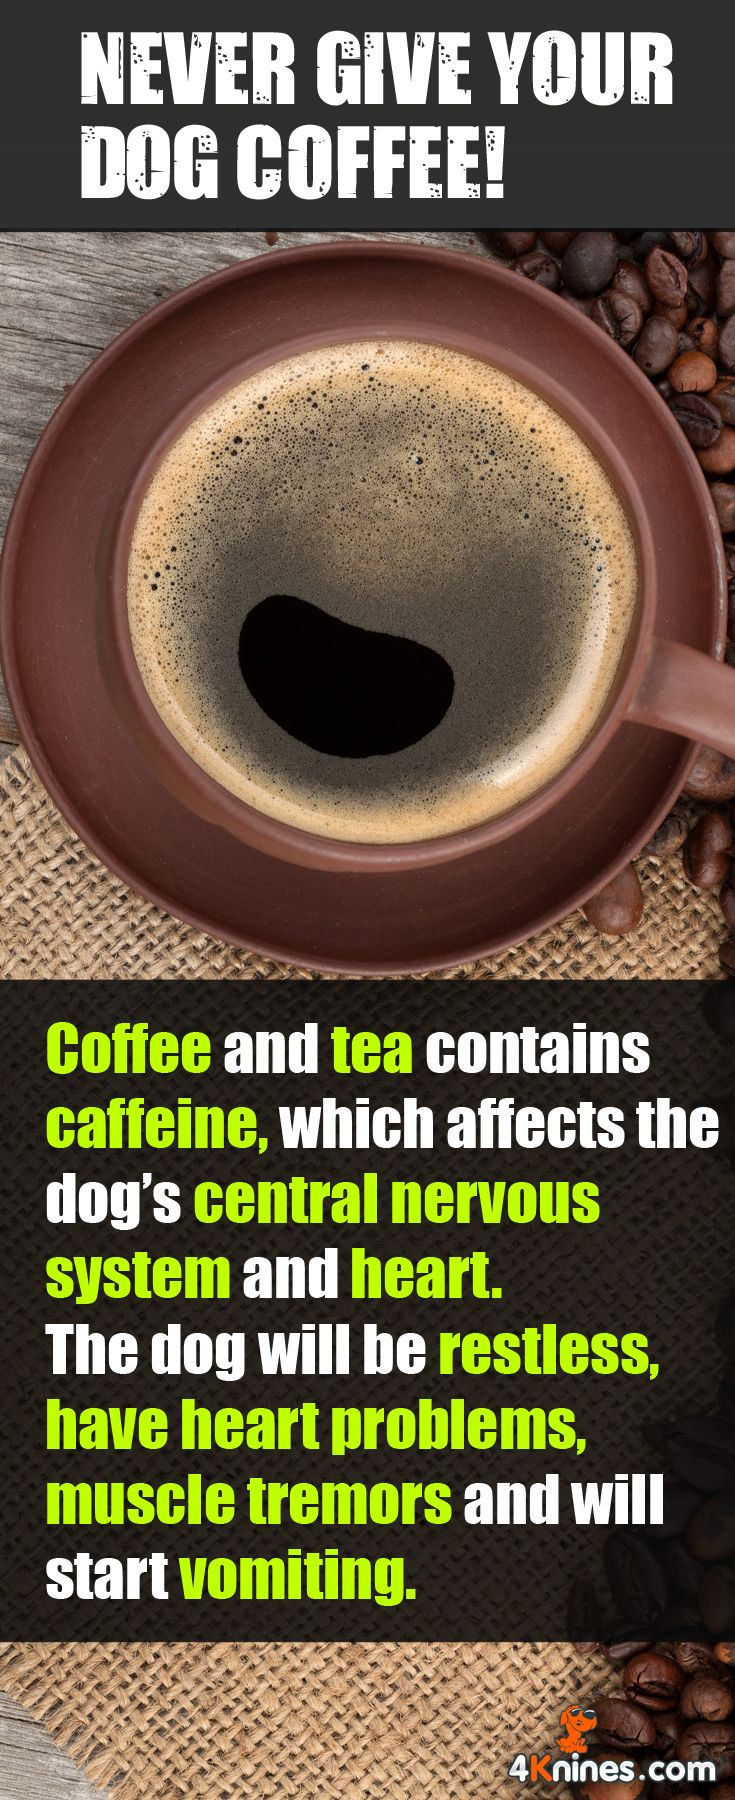 There is also caffeine in coffee grounds, cola and energy